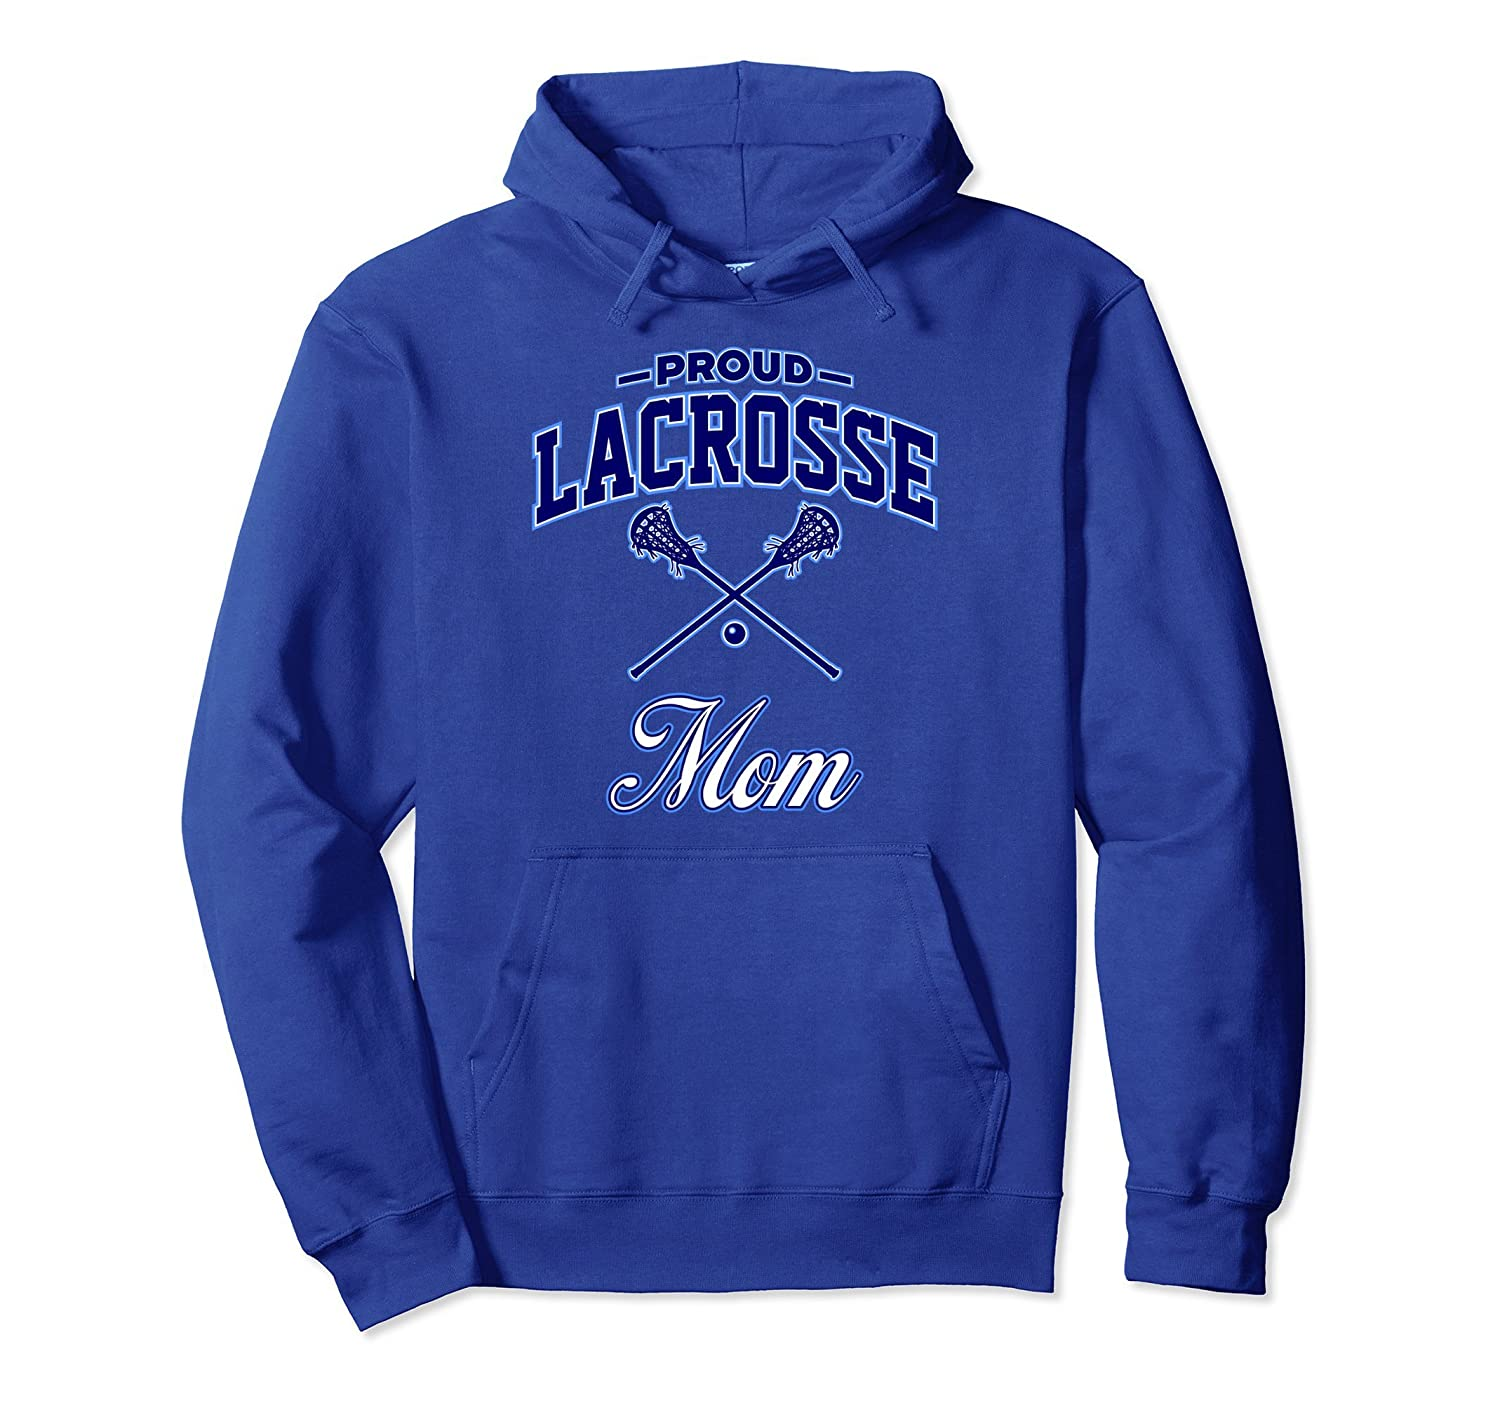 Lacrosse Mom Hoodies for Women-ah my shirt one gift